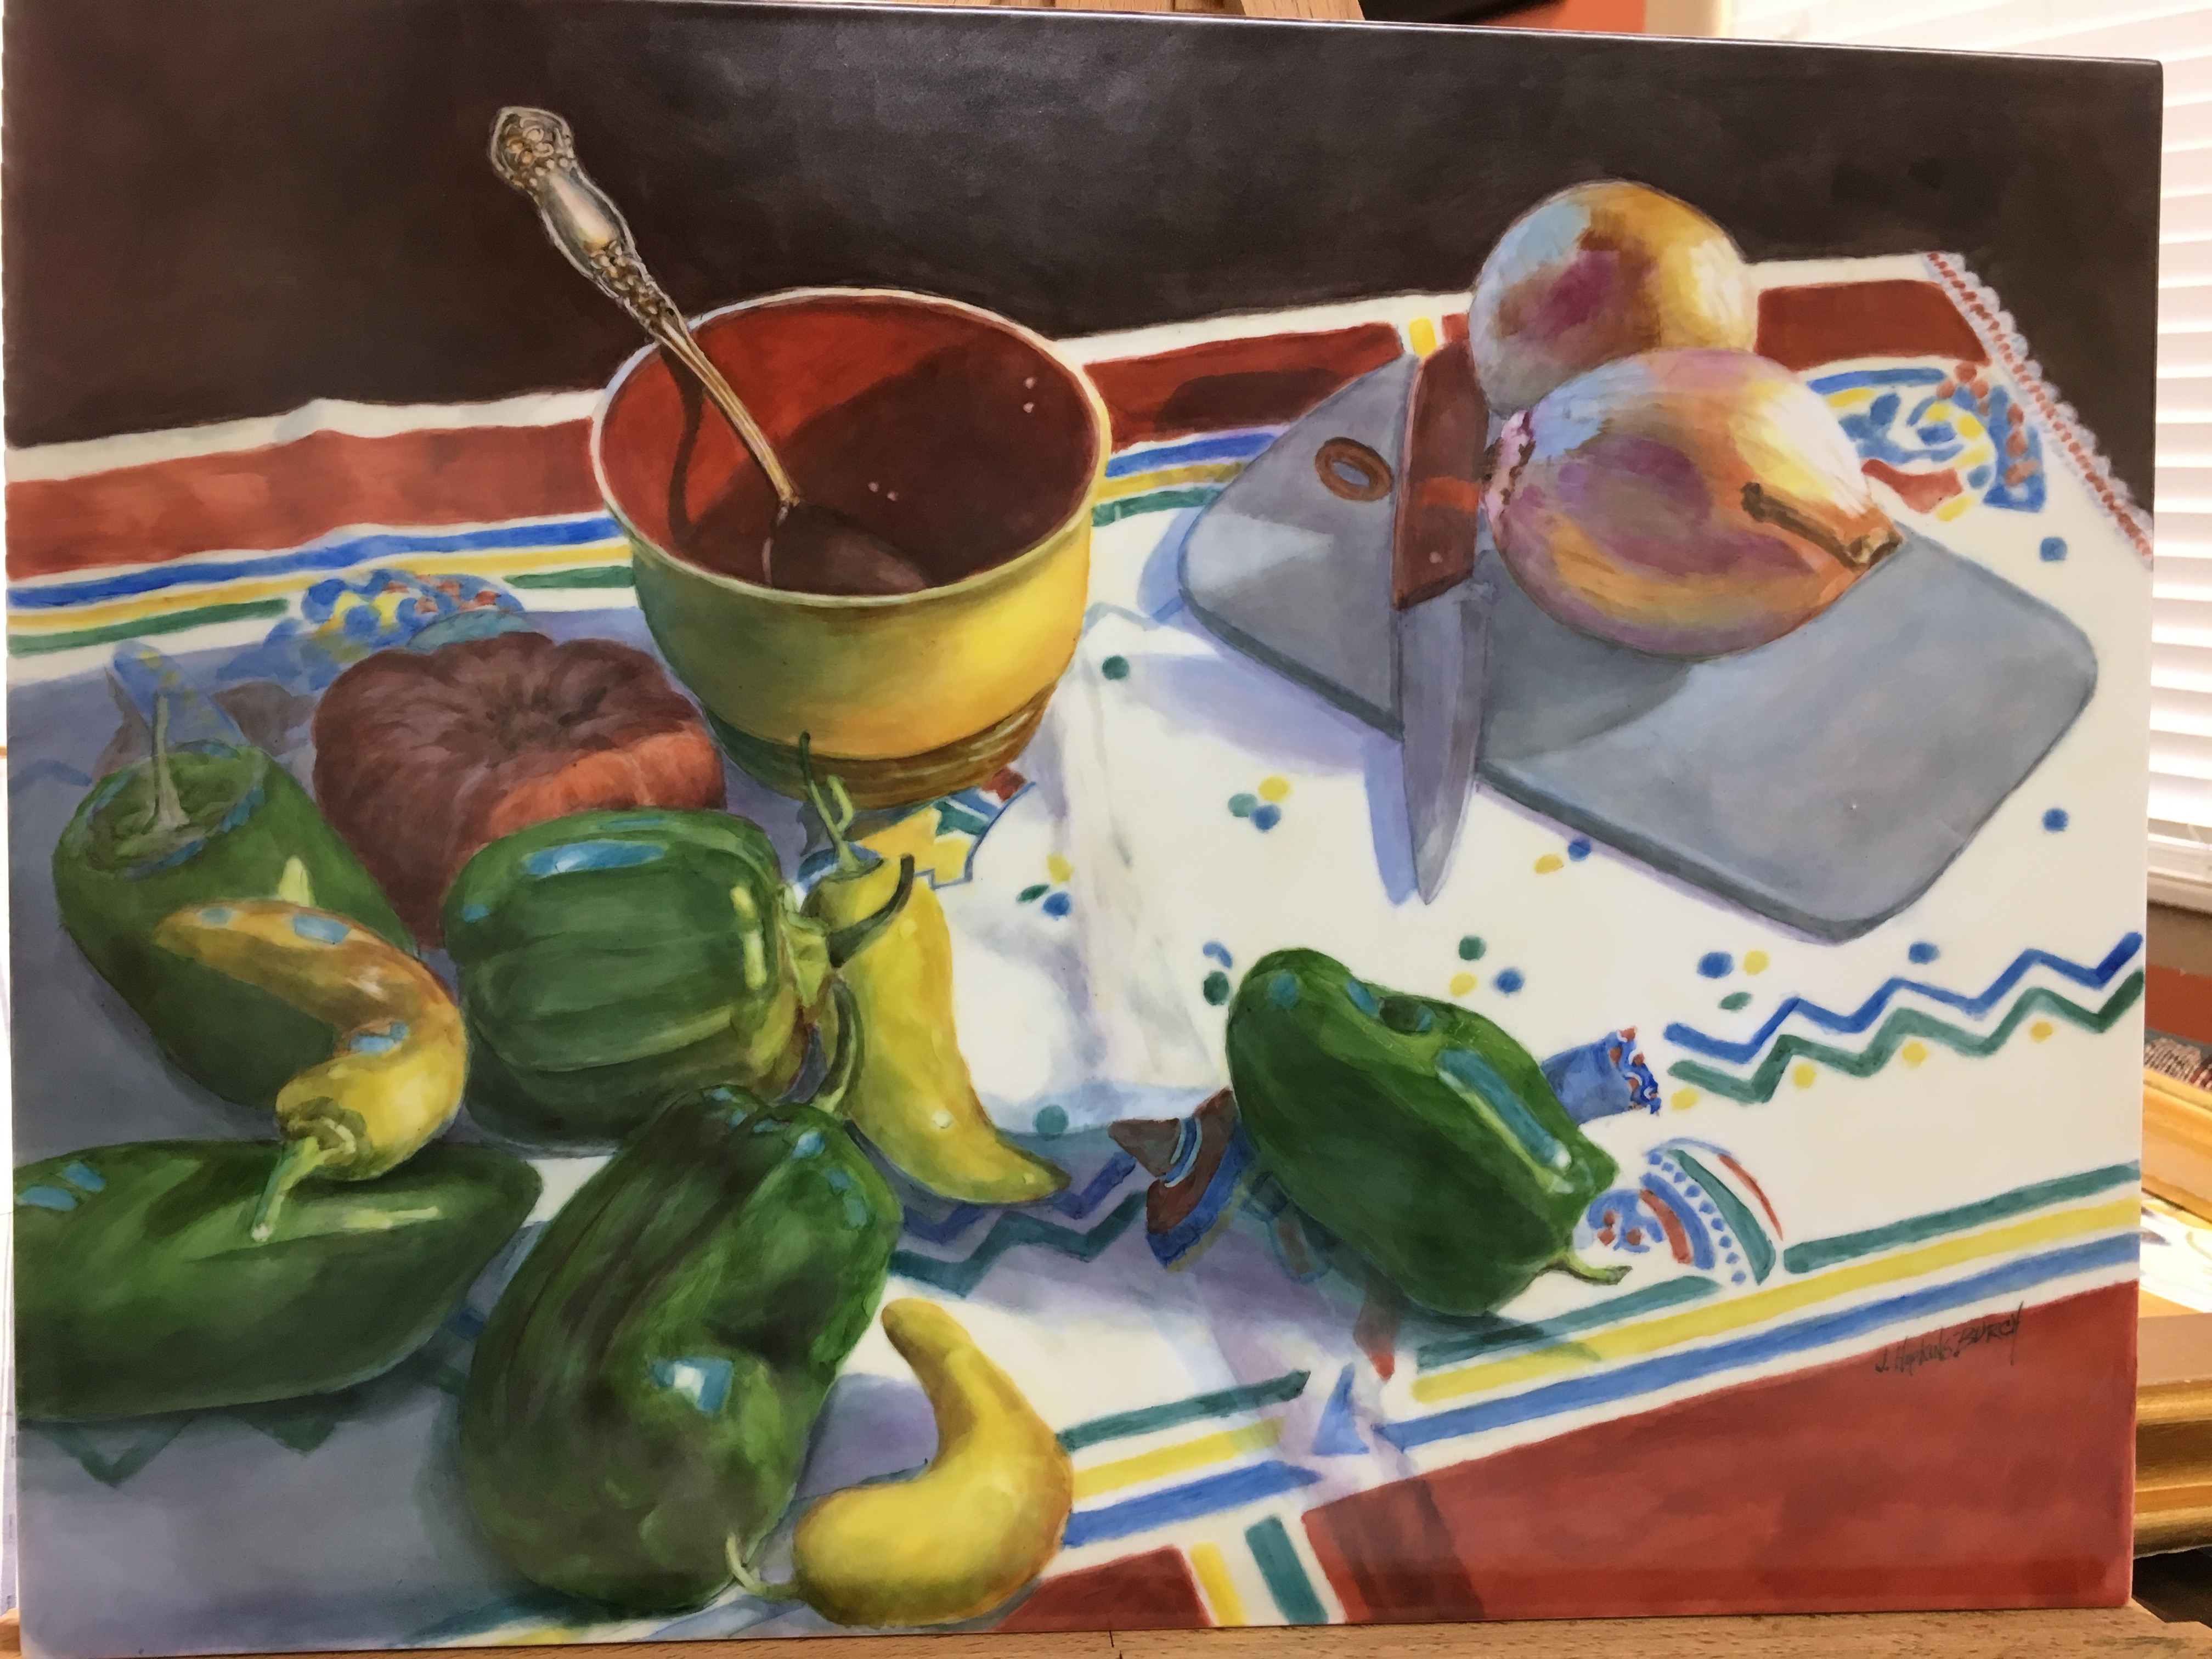 2018-Could be Salsa Someday  oil on porc